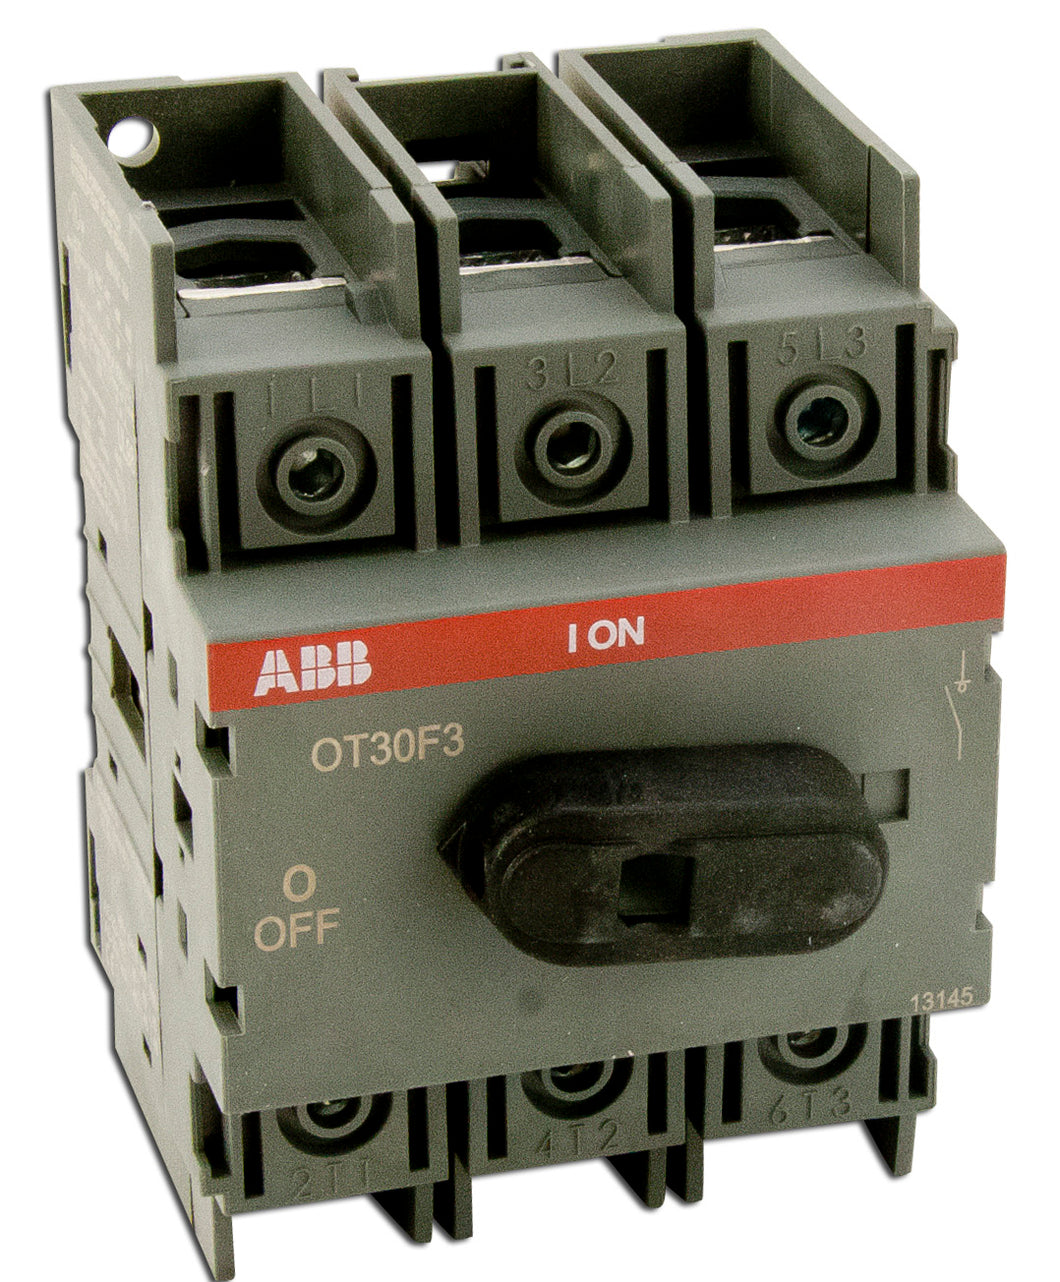 ABB OT30F3 Non-Fused Disconnect, 30 Amp, 3-Pole  ABB OT30F3